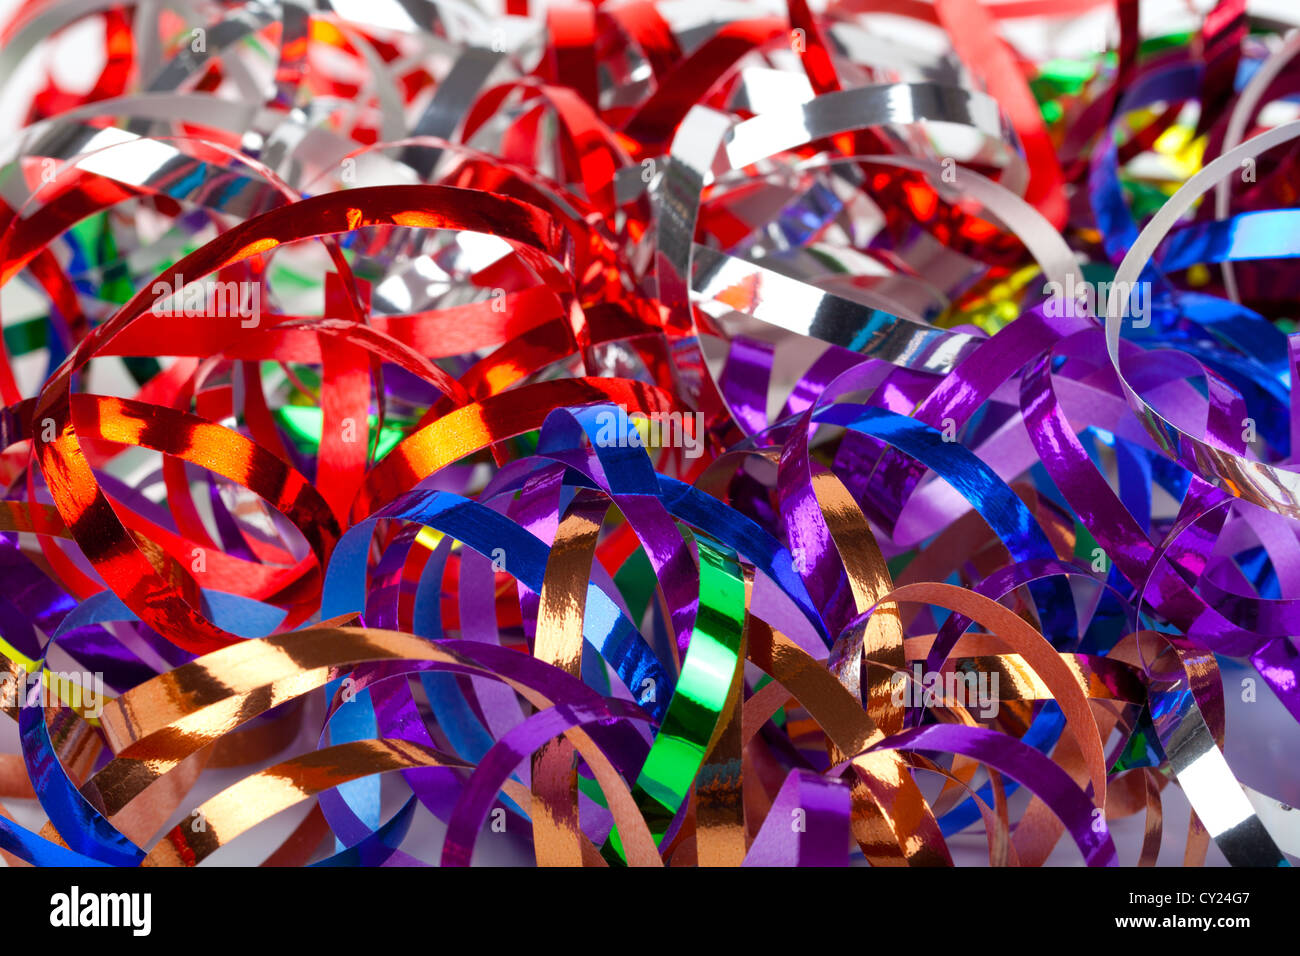 Colorful streamers background - Stock Image